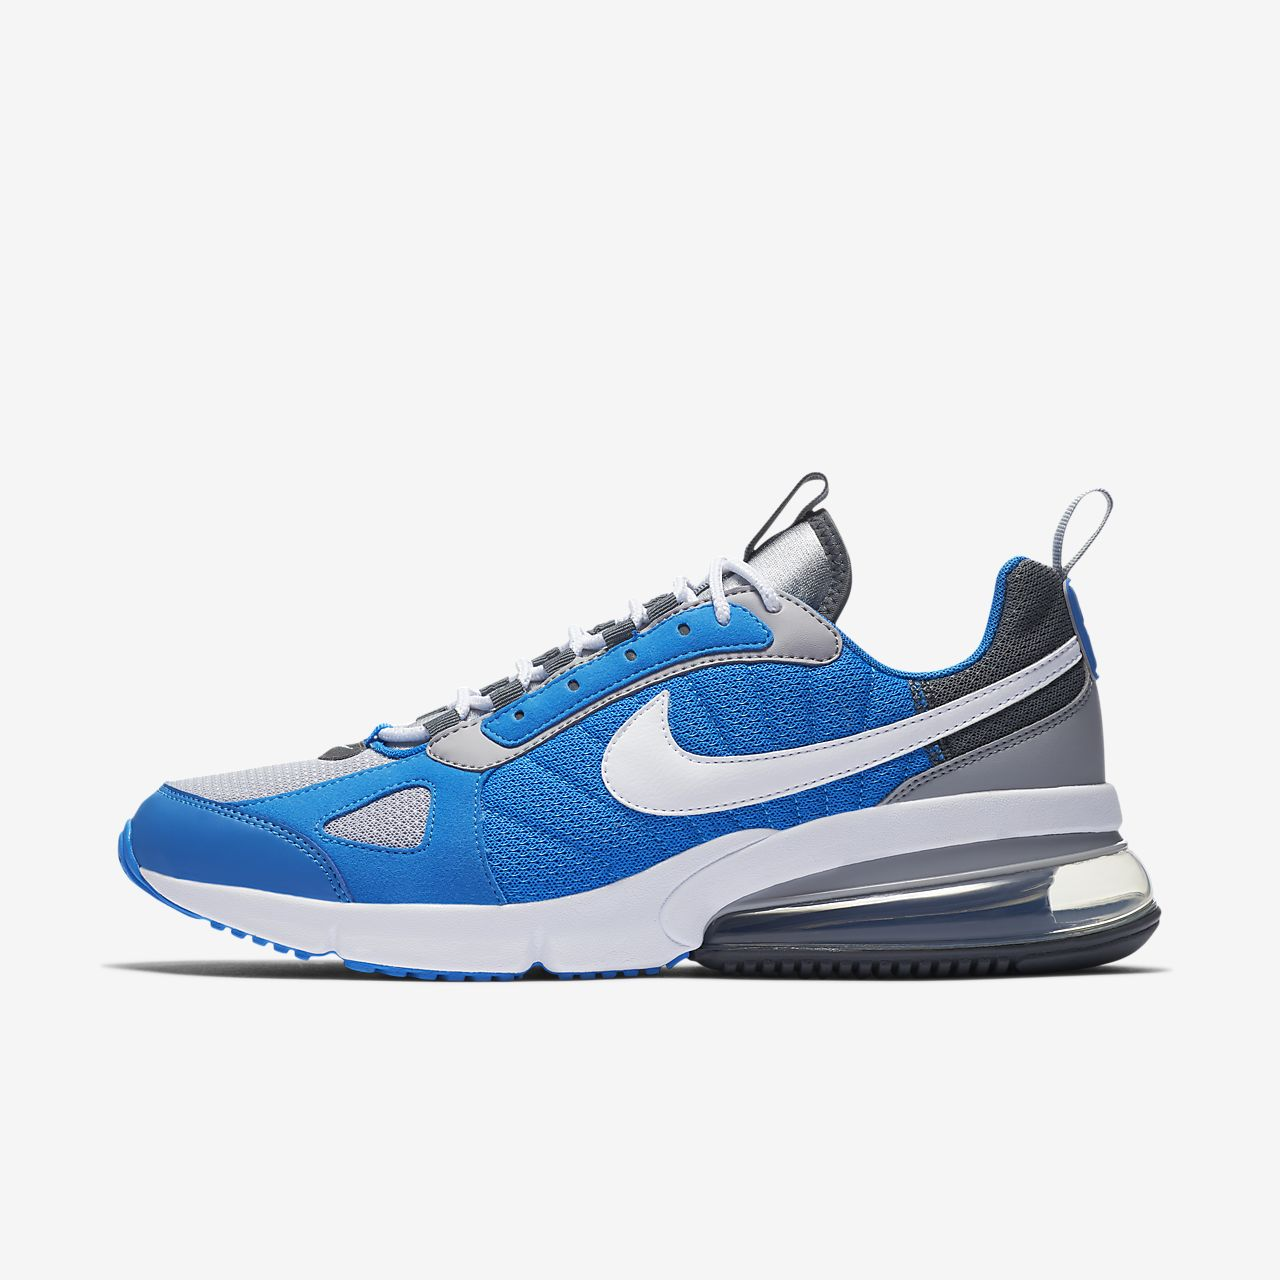 innovative design a0c29 d4529 Nike Air Max 270 Futura